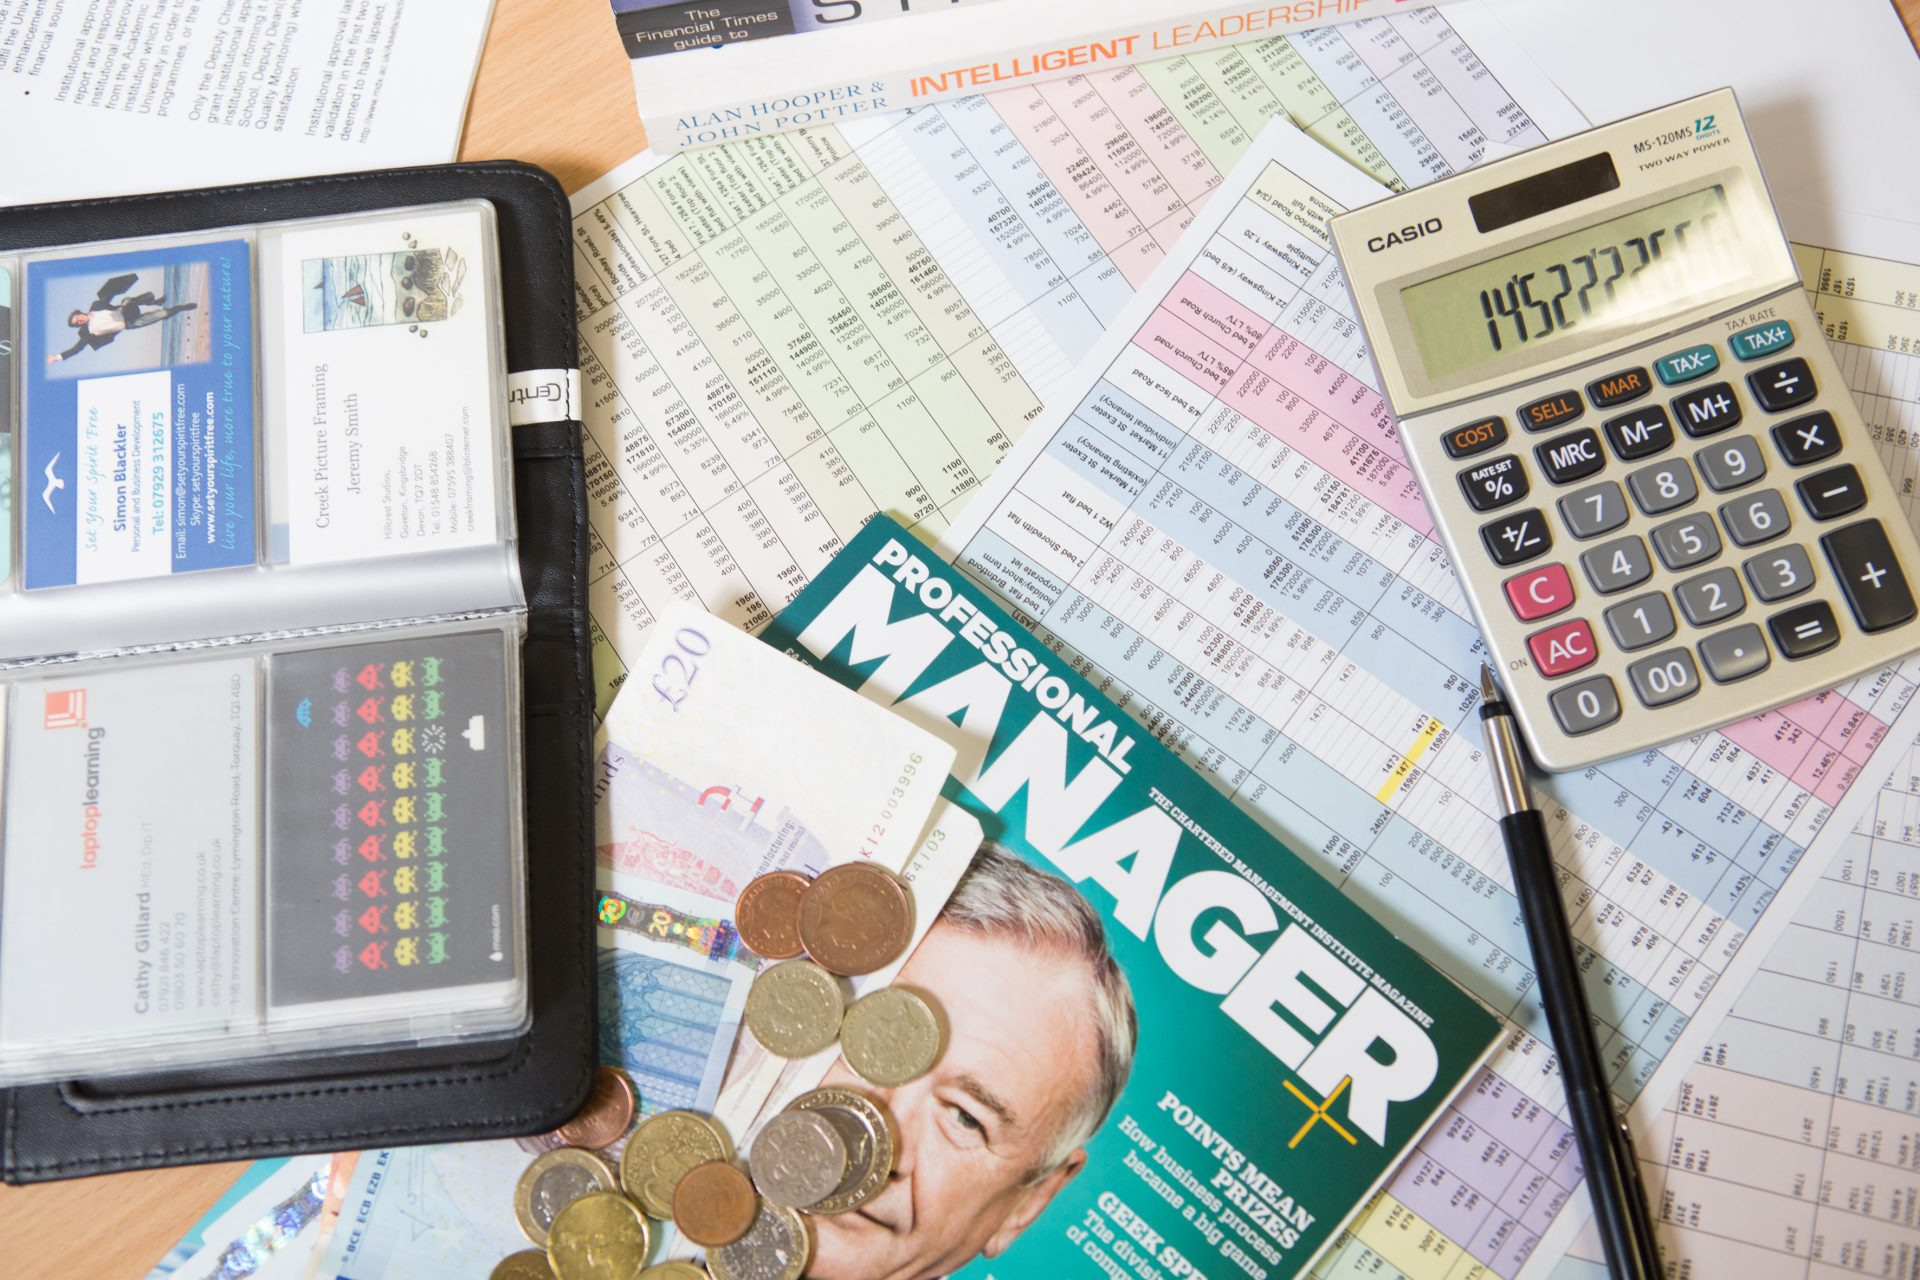 Magazines, forms and a calculator on a desk.